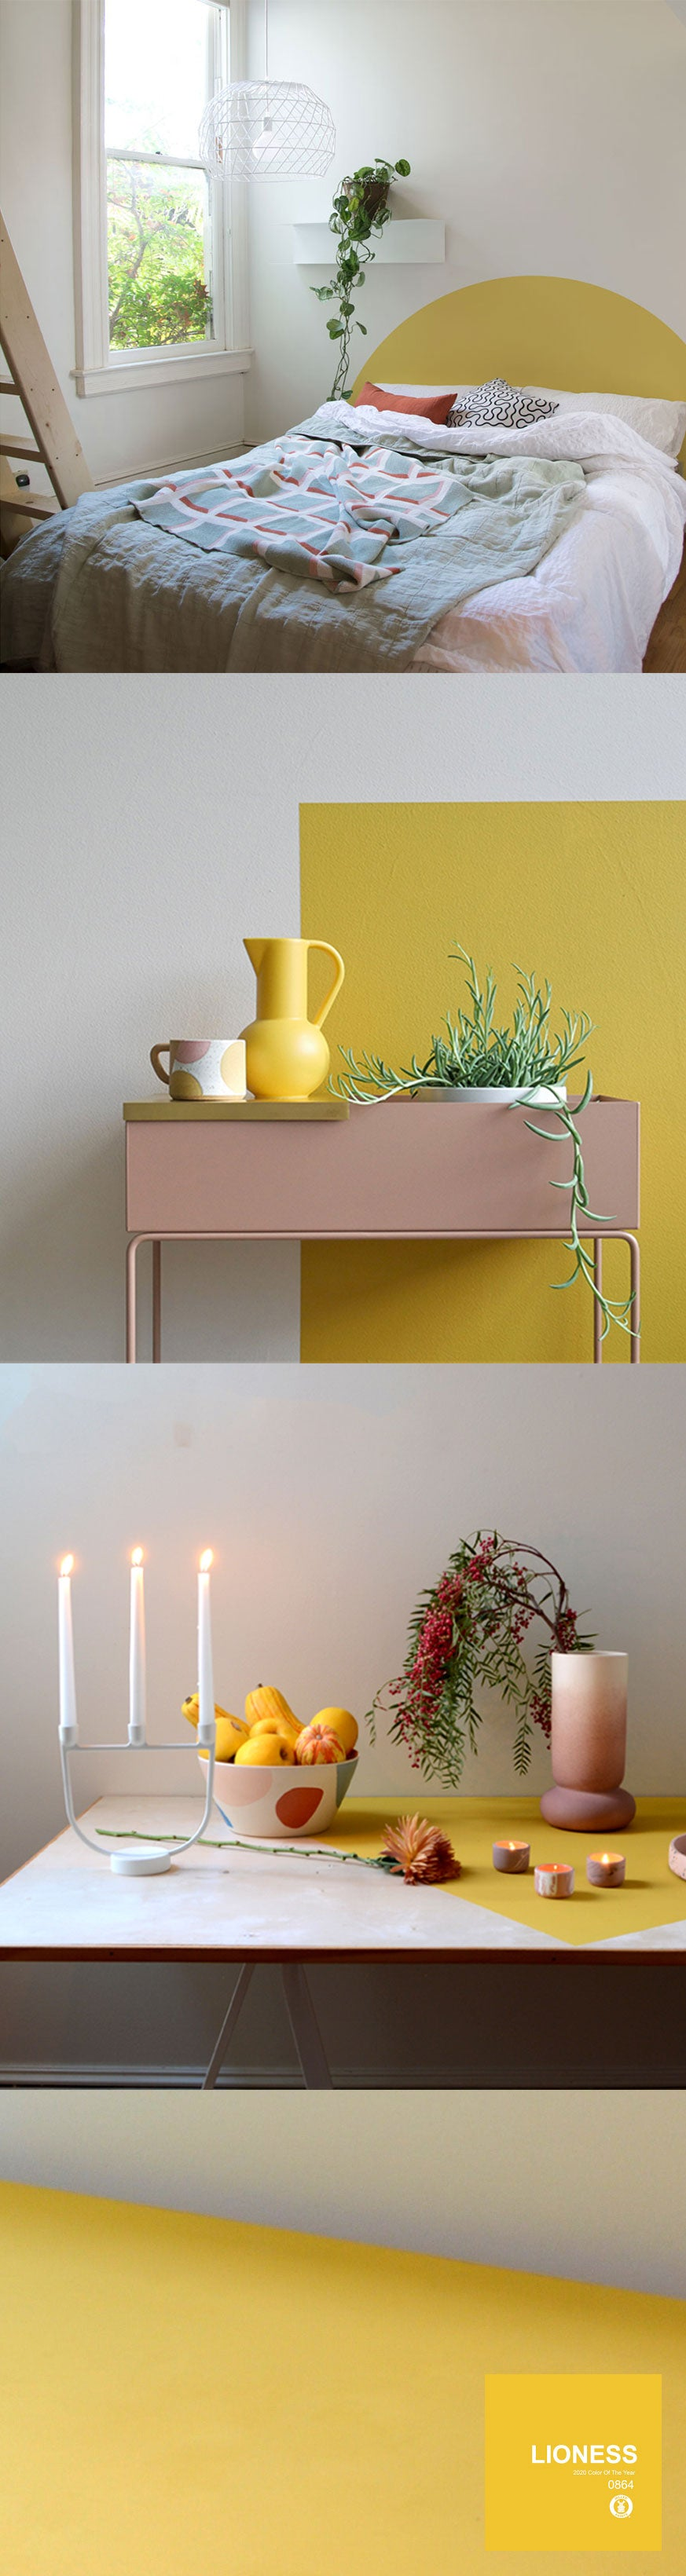 3 projects showing the use of the yellow color Lioness: a bedroom, a table top, and a wall